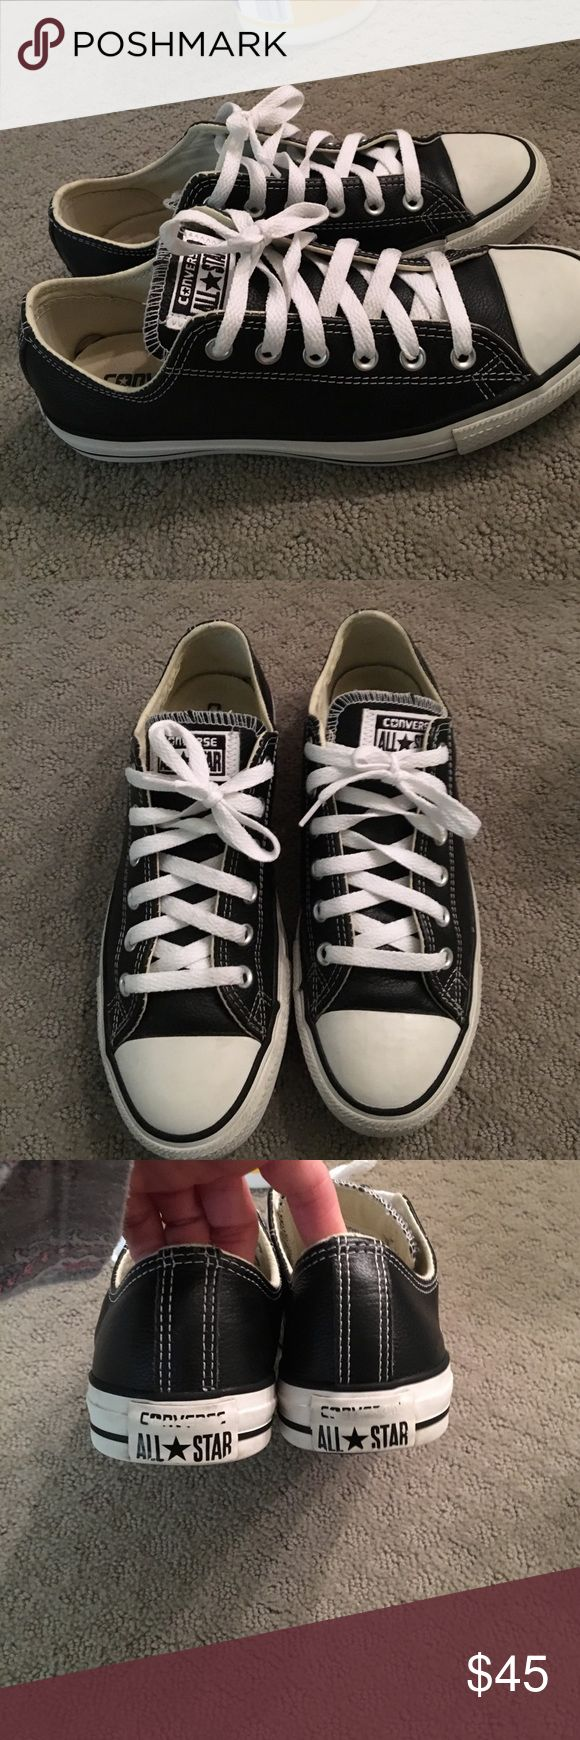 Converse shoes sz  mens 7 = 8 Converse men's shoes size 7men's they run a size big so they are 8 worn only a few times great condition Converse Shoes Sneakers